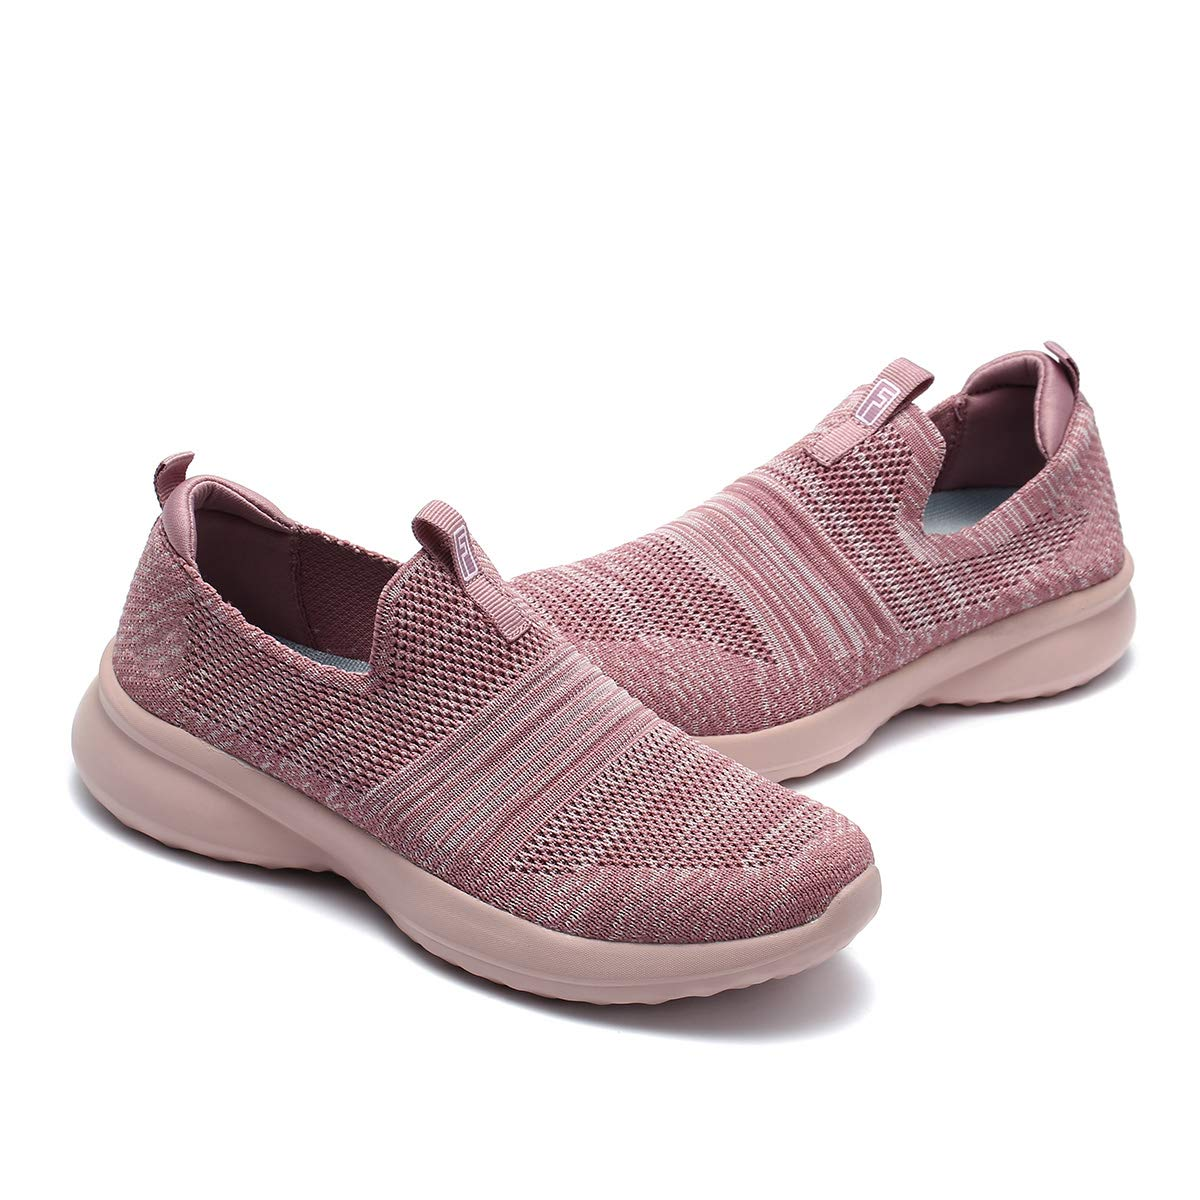 gracosy Womens Knit Sneakers Tennis Walking Shoes Lightweight Casual Sport Shoes Athletic Breathable Mesh Work Shoes